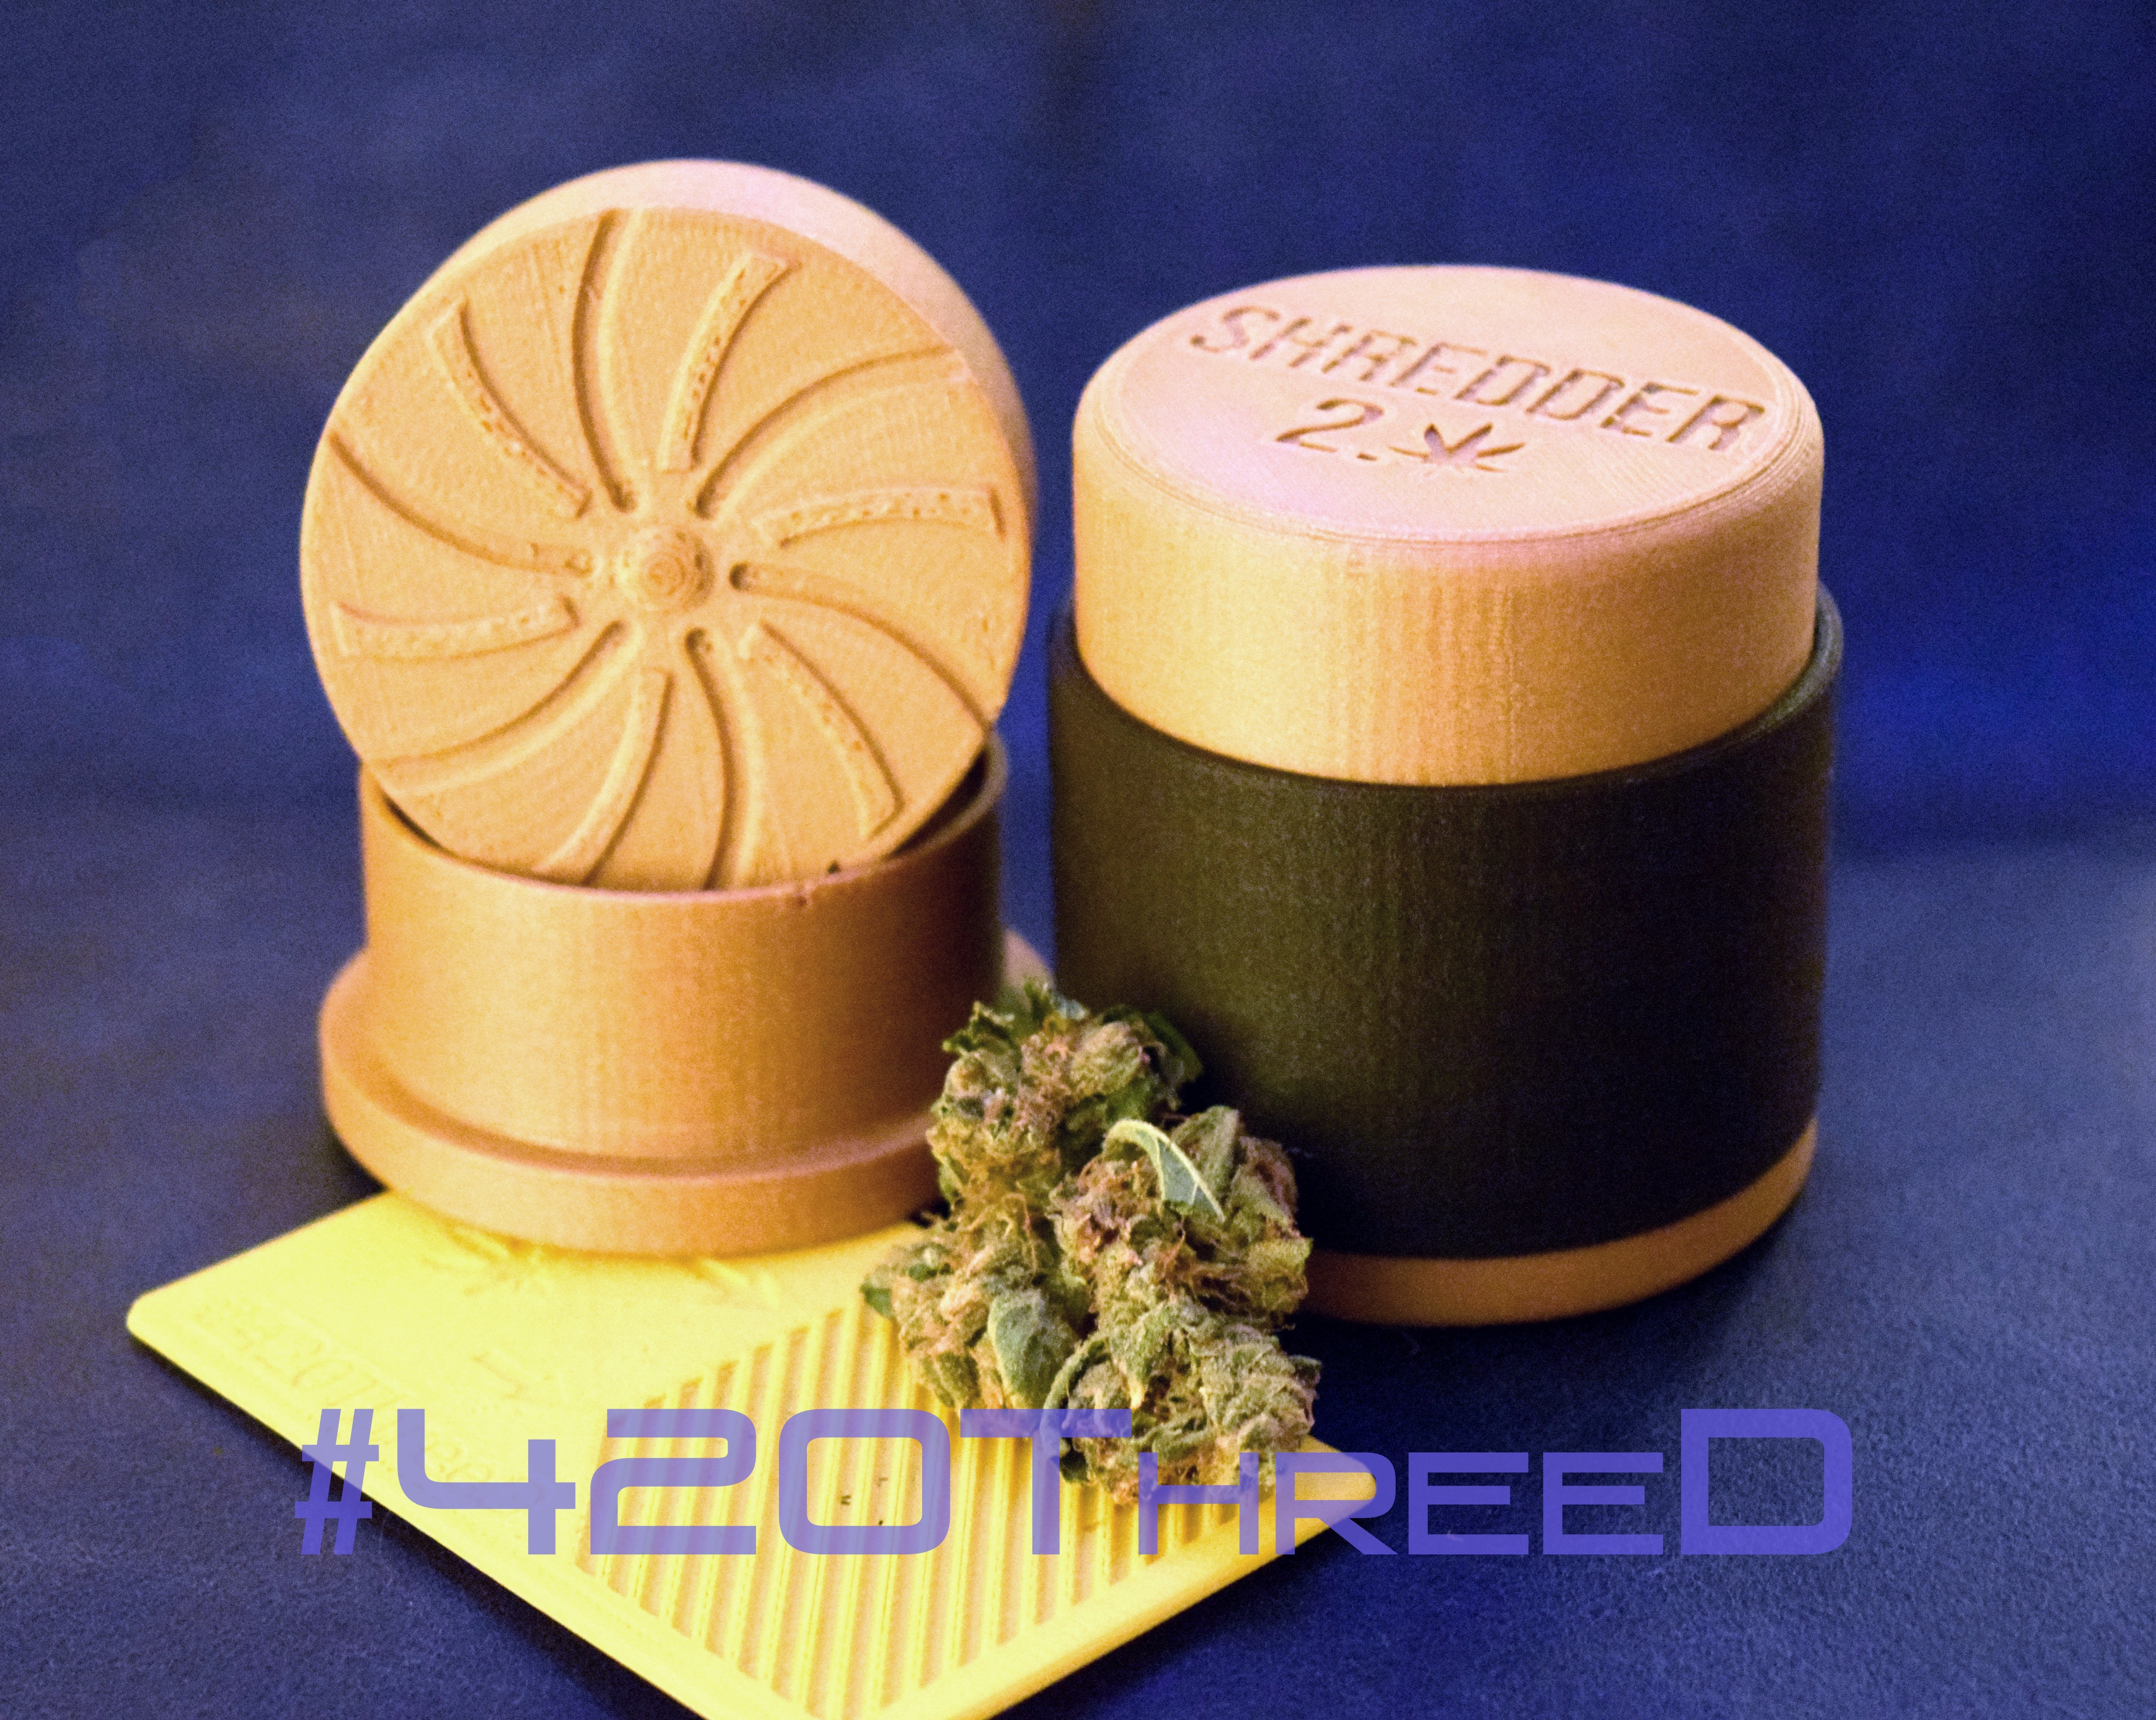 DSC_0002 2.jpg Download free STL file Toothless Herb Grinder 2.0 By 420ThreeD • 3D printable object, 420ThreeD